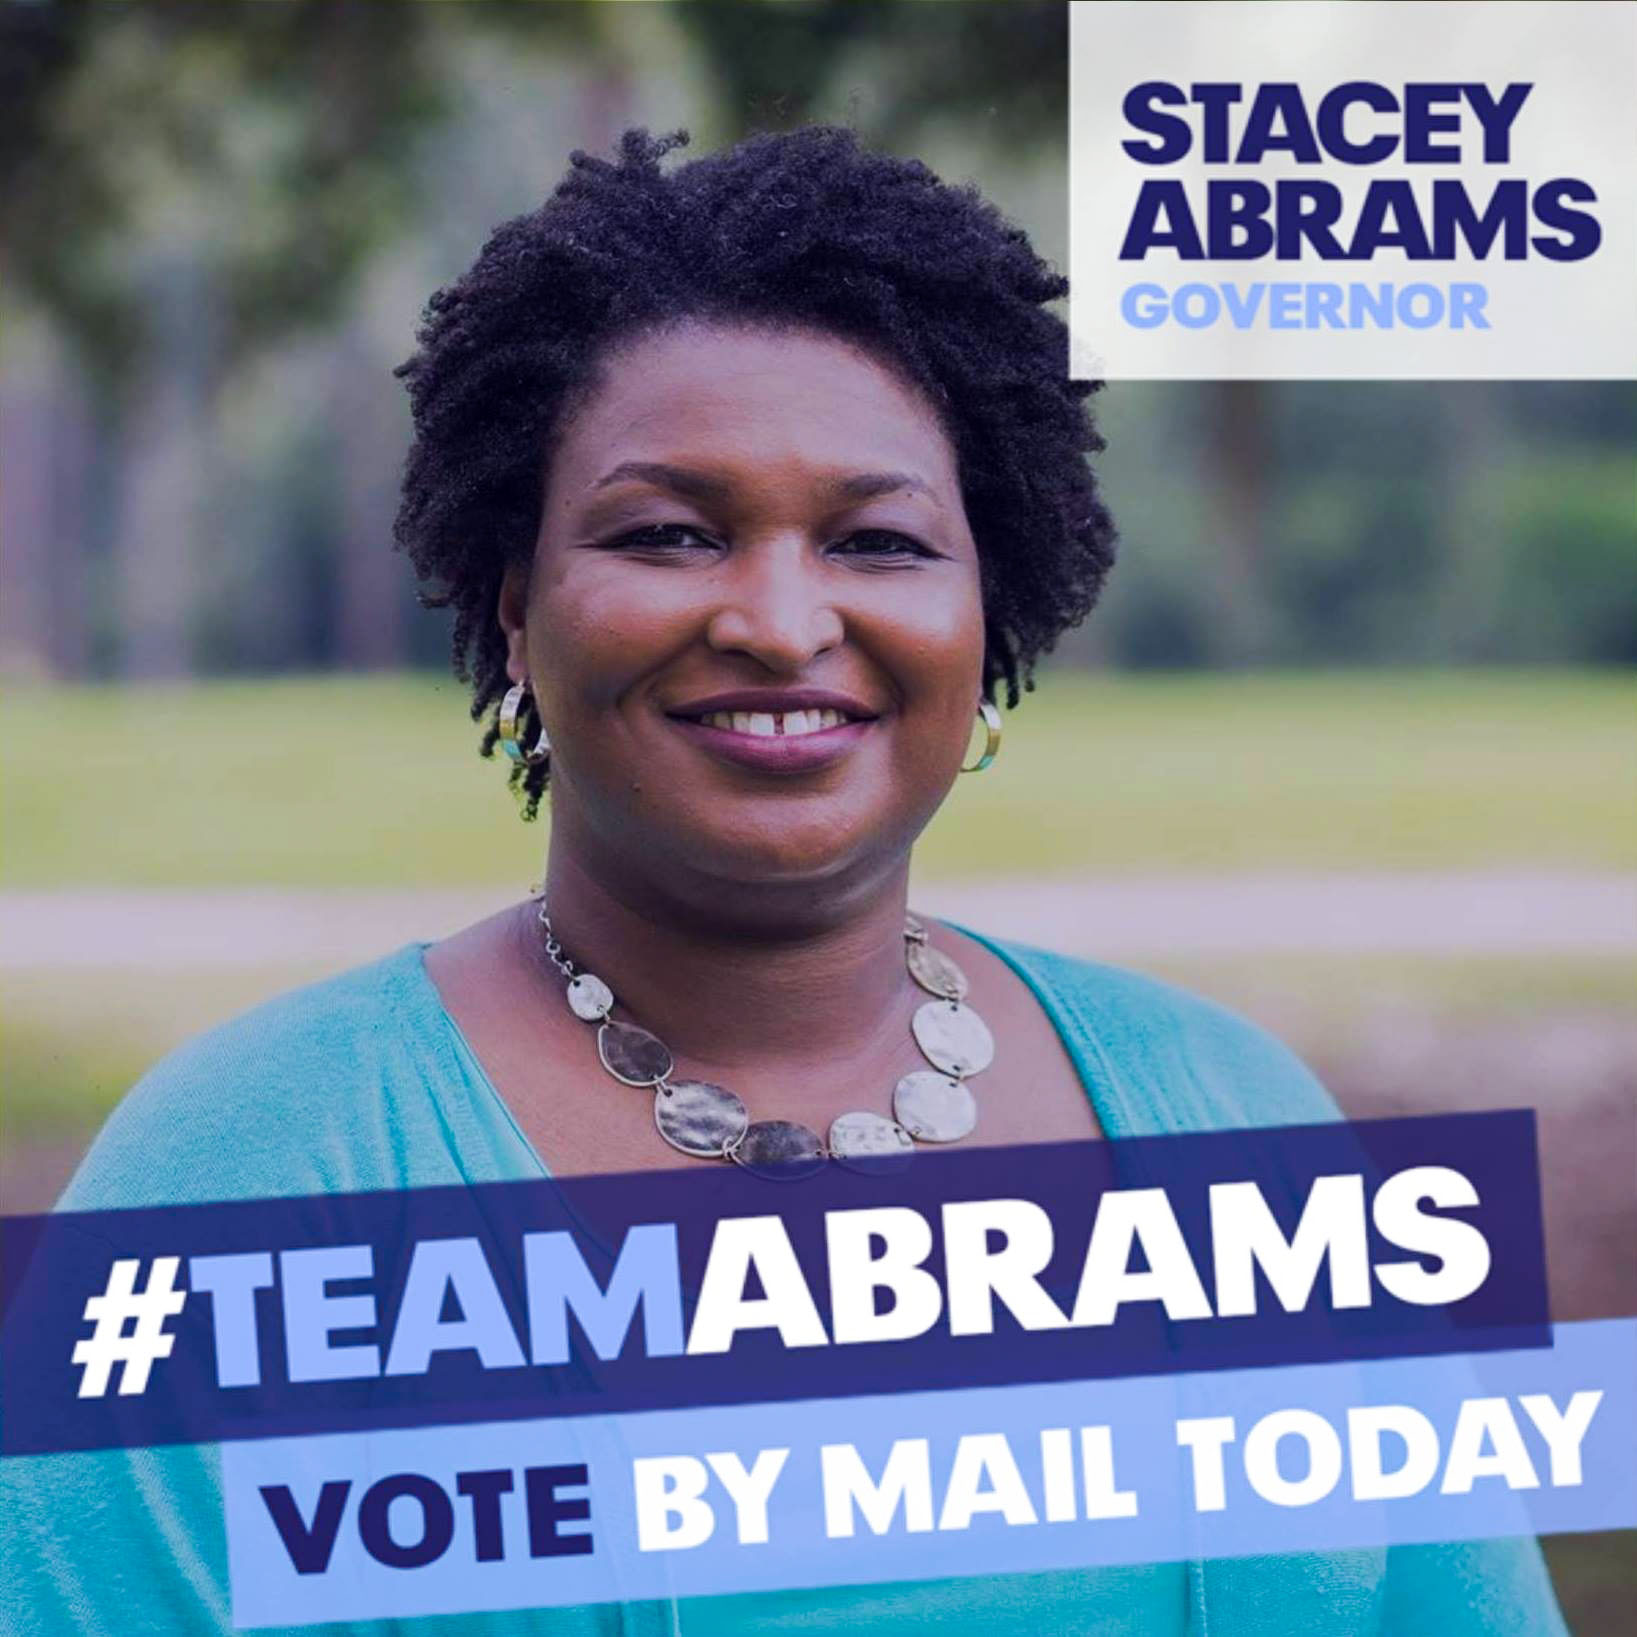 20188010 Stacey Abrams Brian Kemp 2